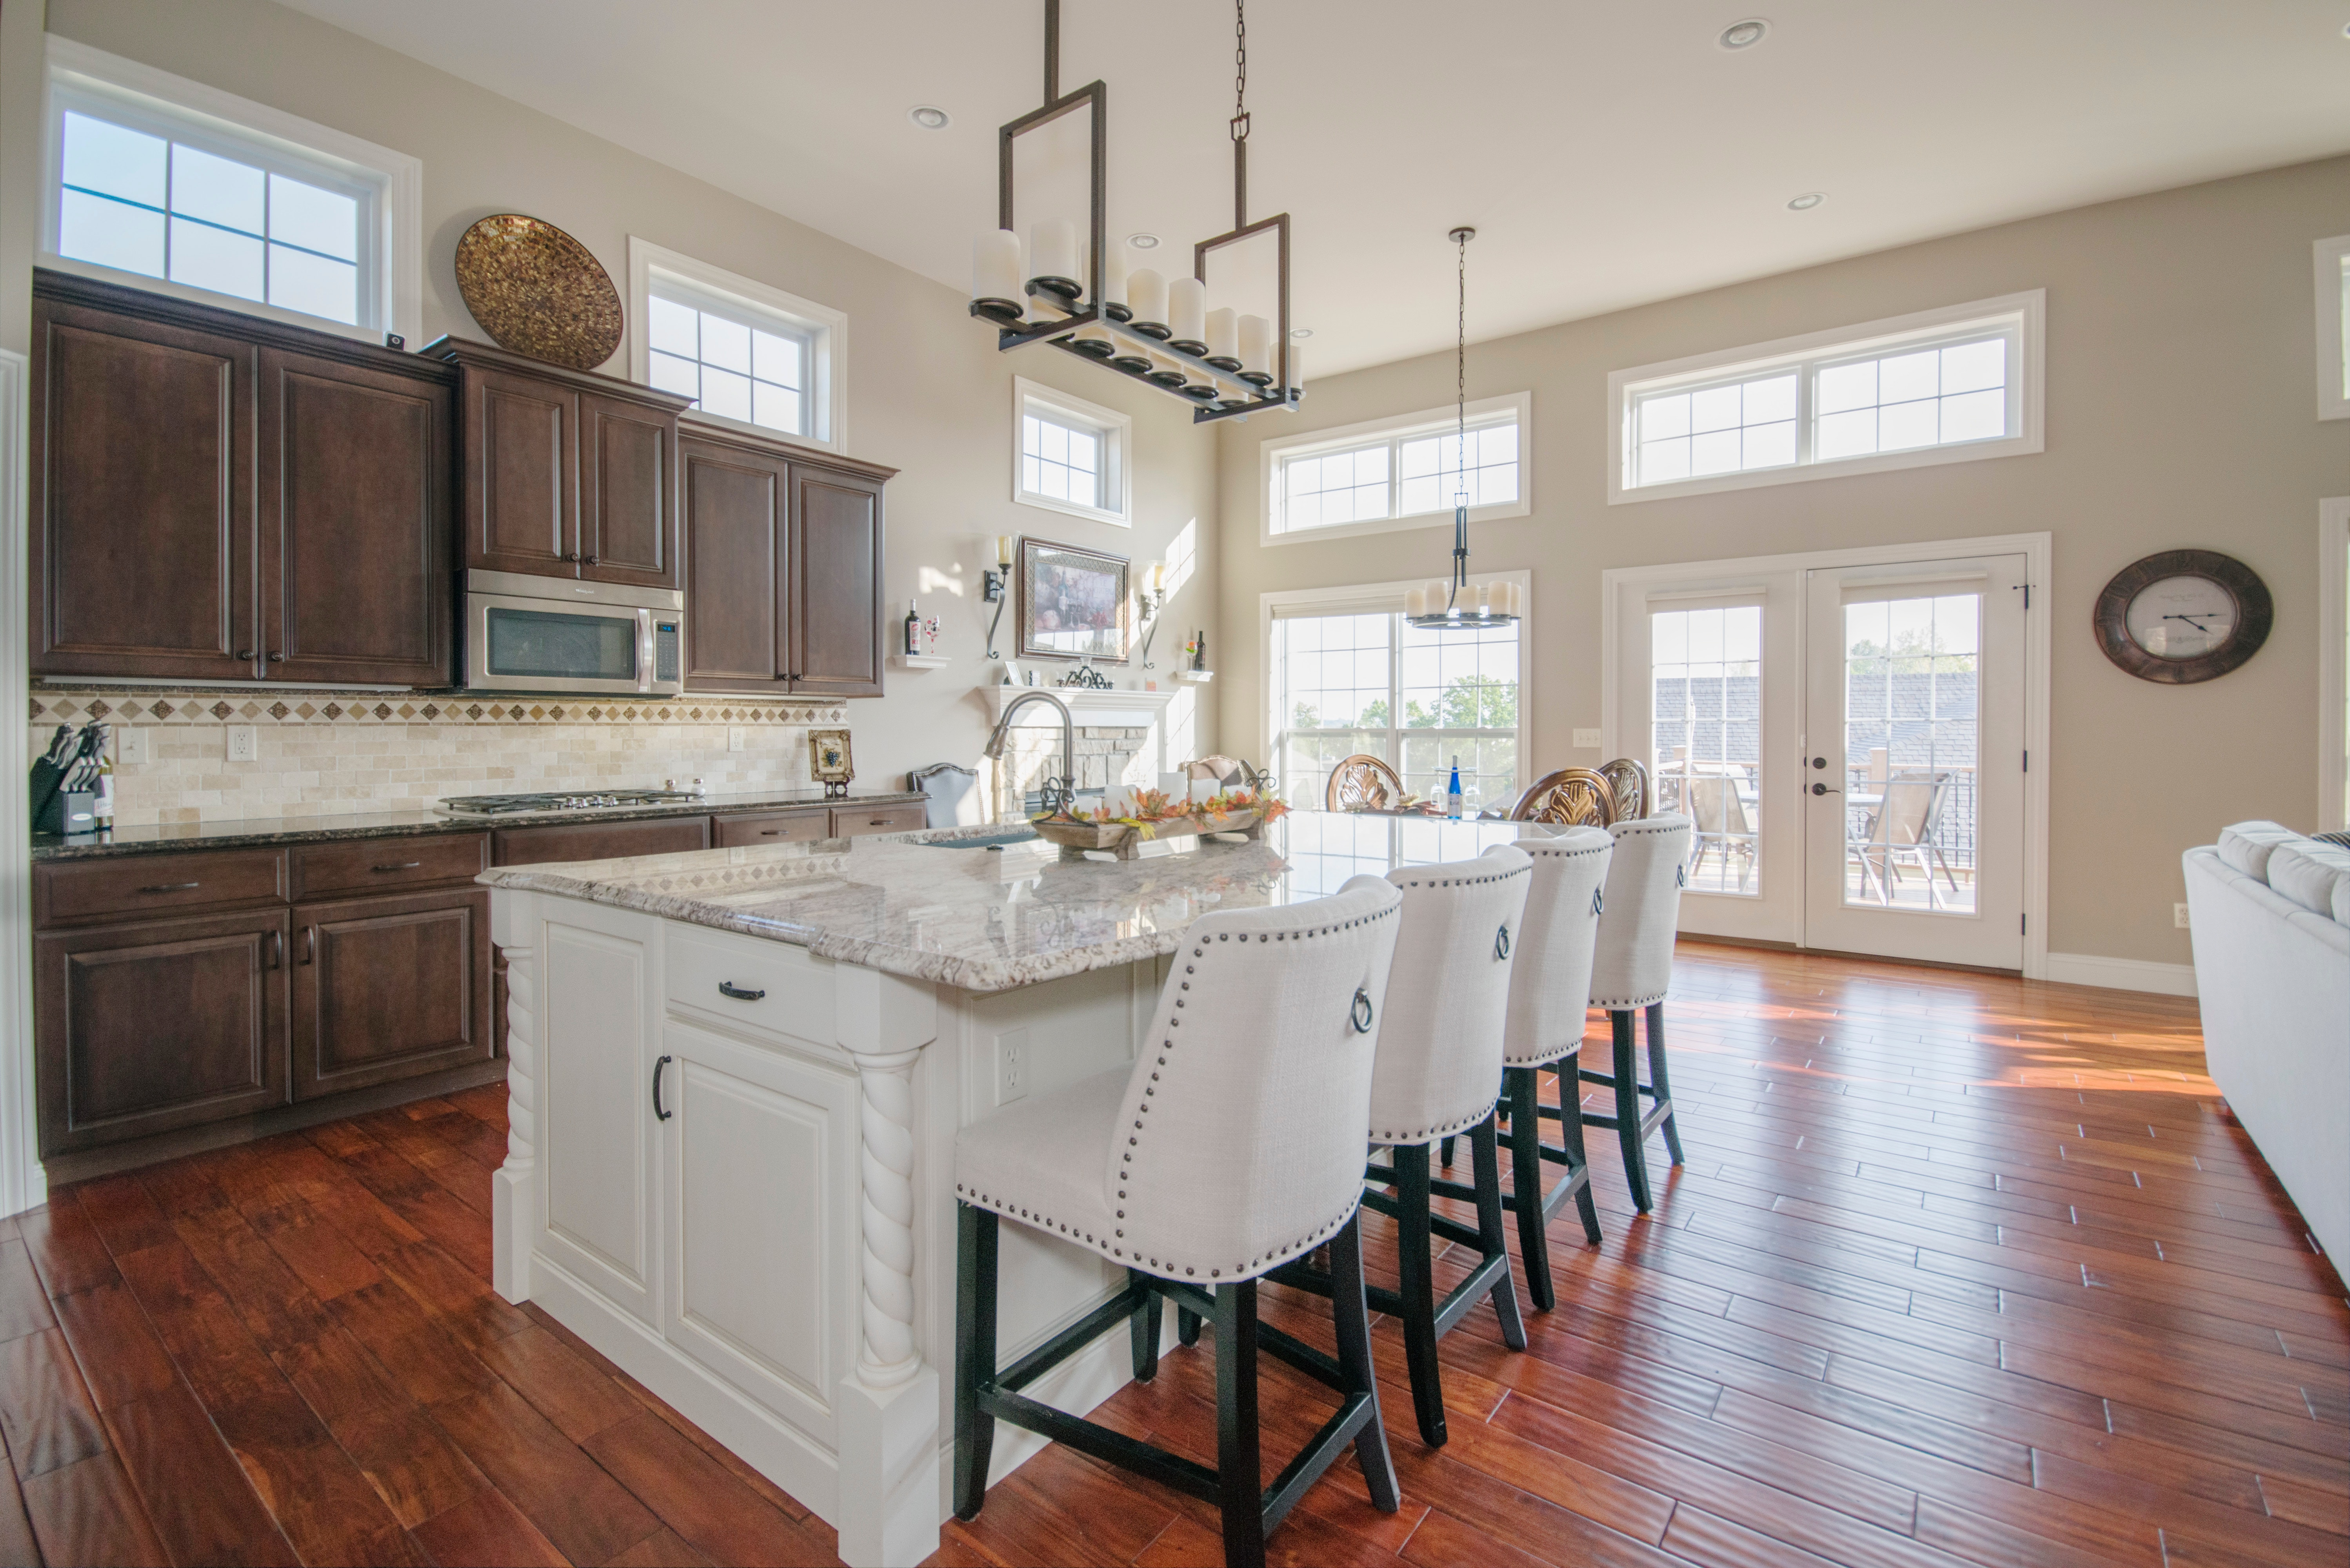 Kitchen Remodeling Design In Cypress Cypress Kitchen Remodeling By Design